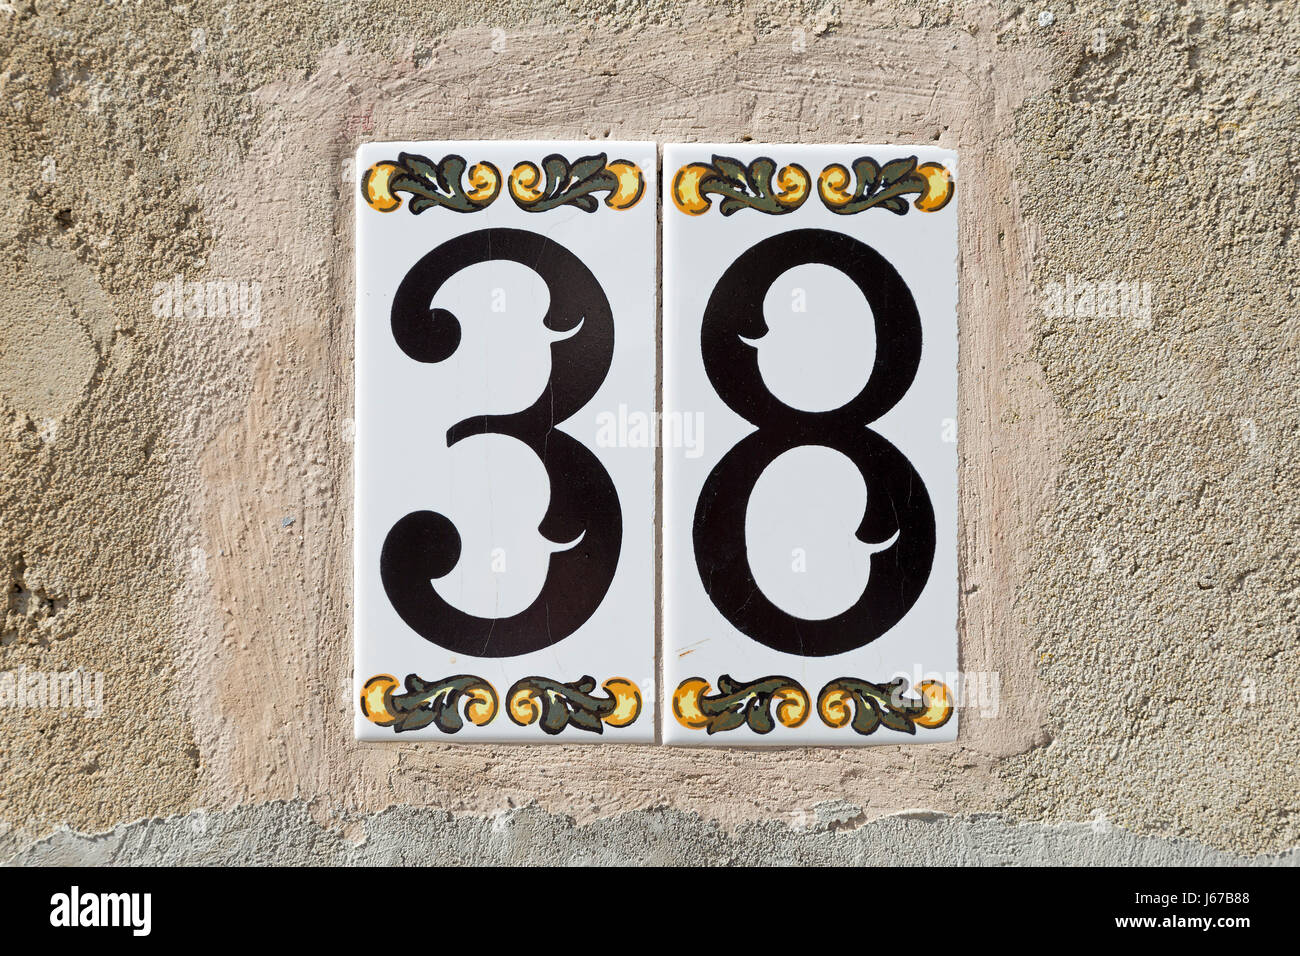 tiles with house number in Pollenca, Majorca, Spain - Stock Image